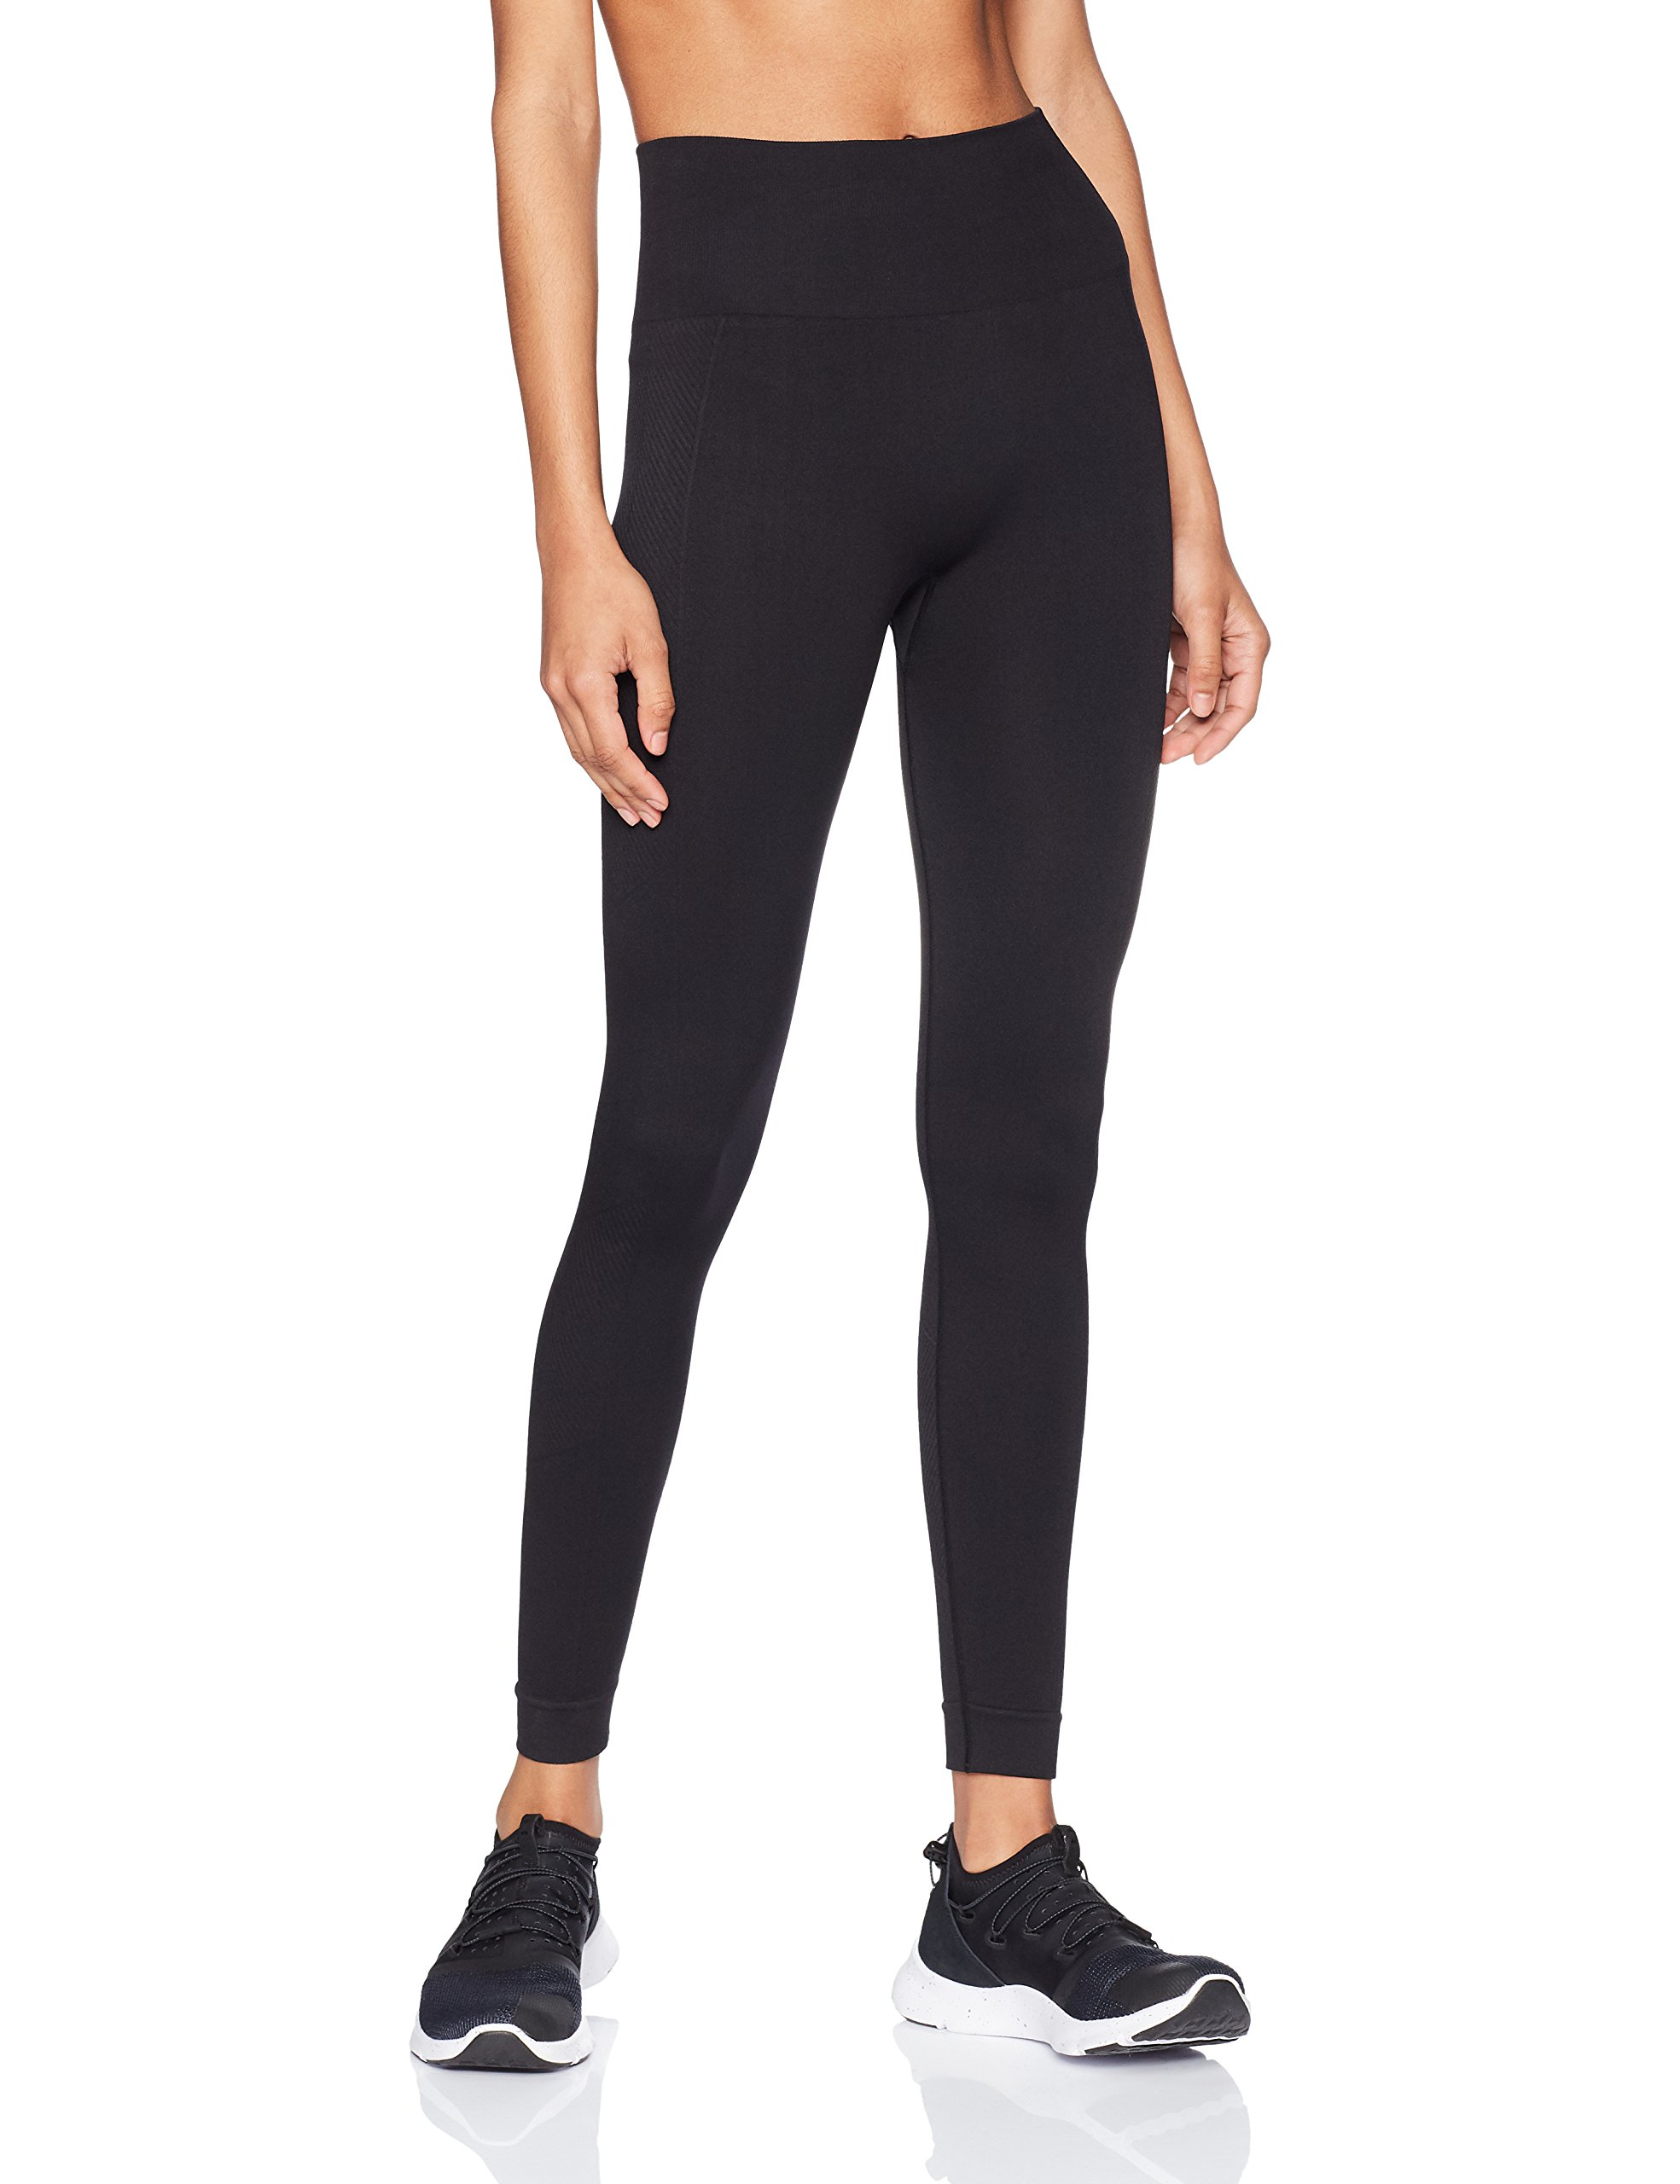 Starter Seamless Light Compression Cropped Exclusive